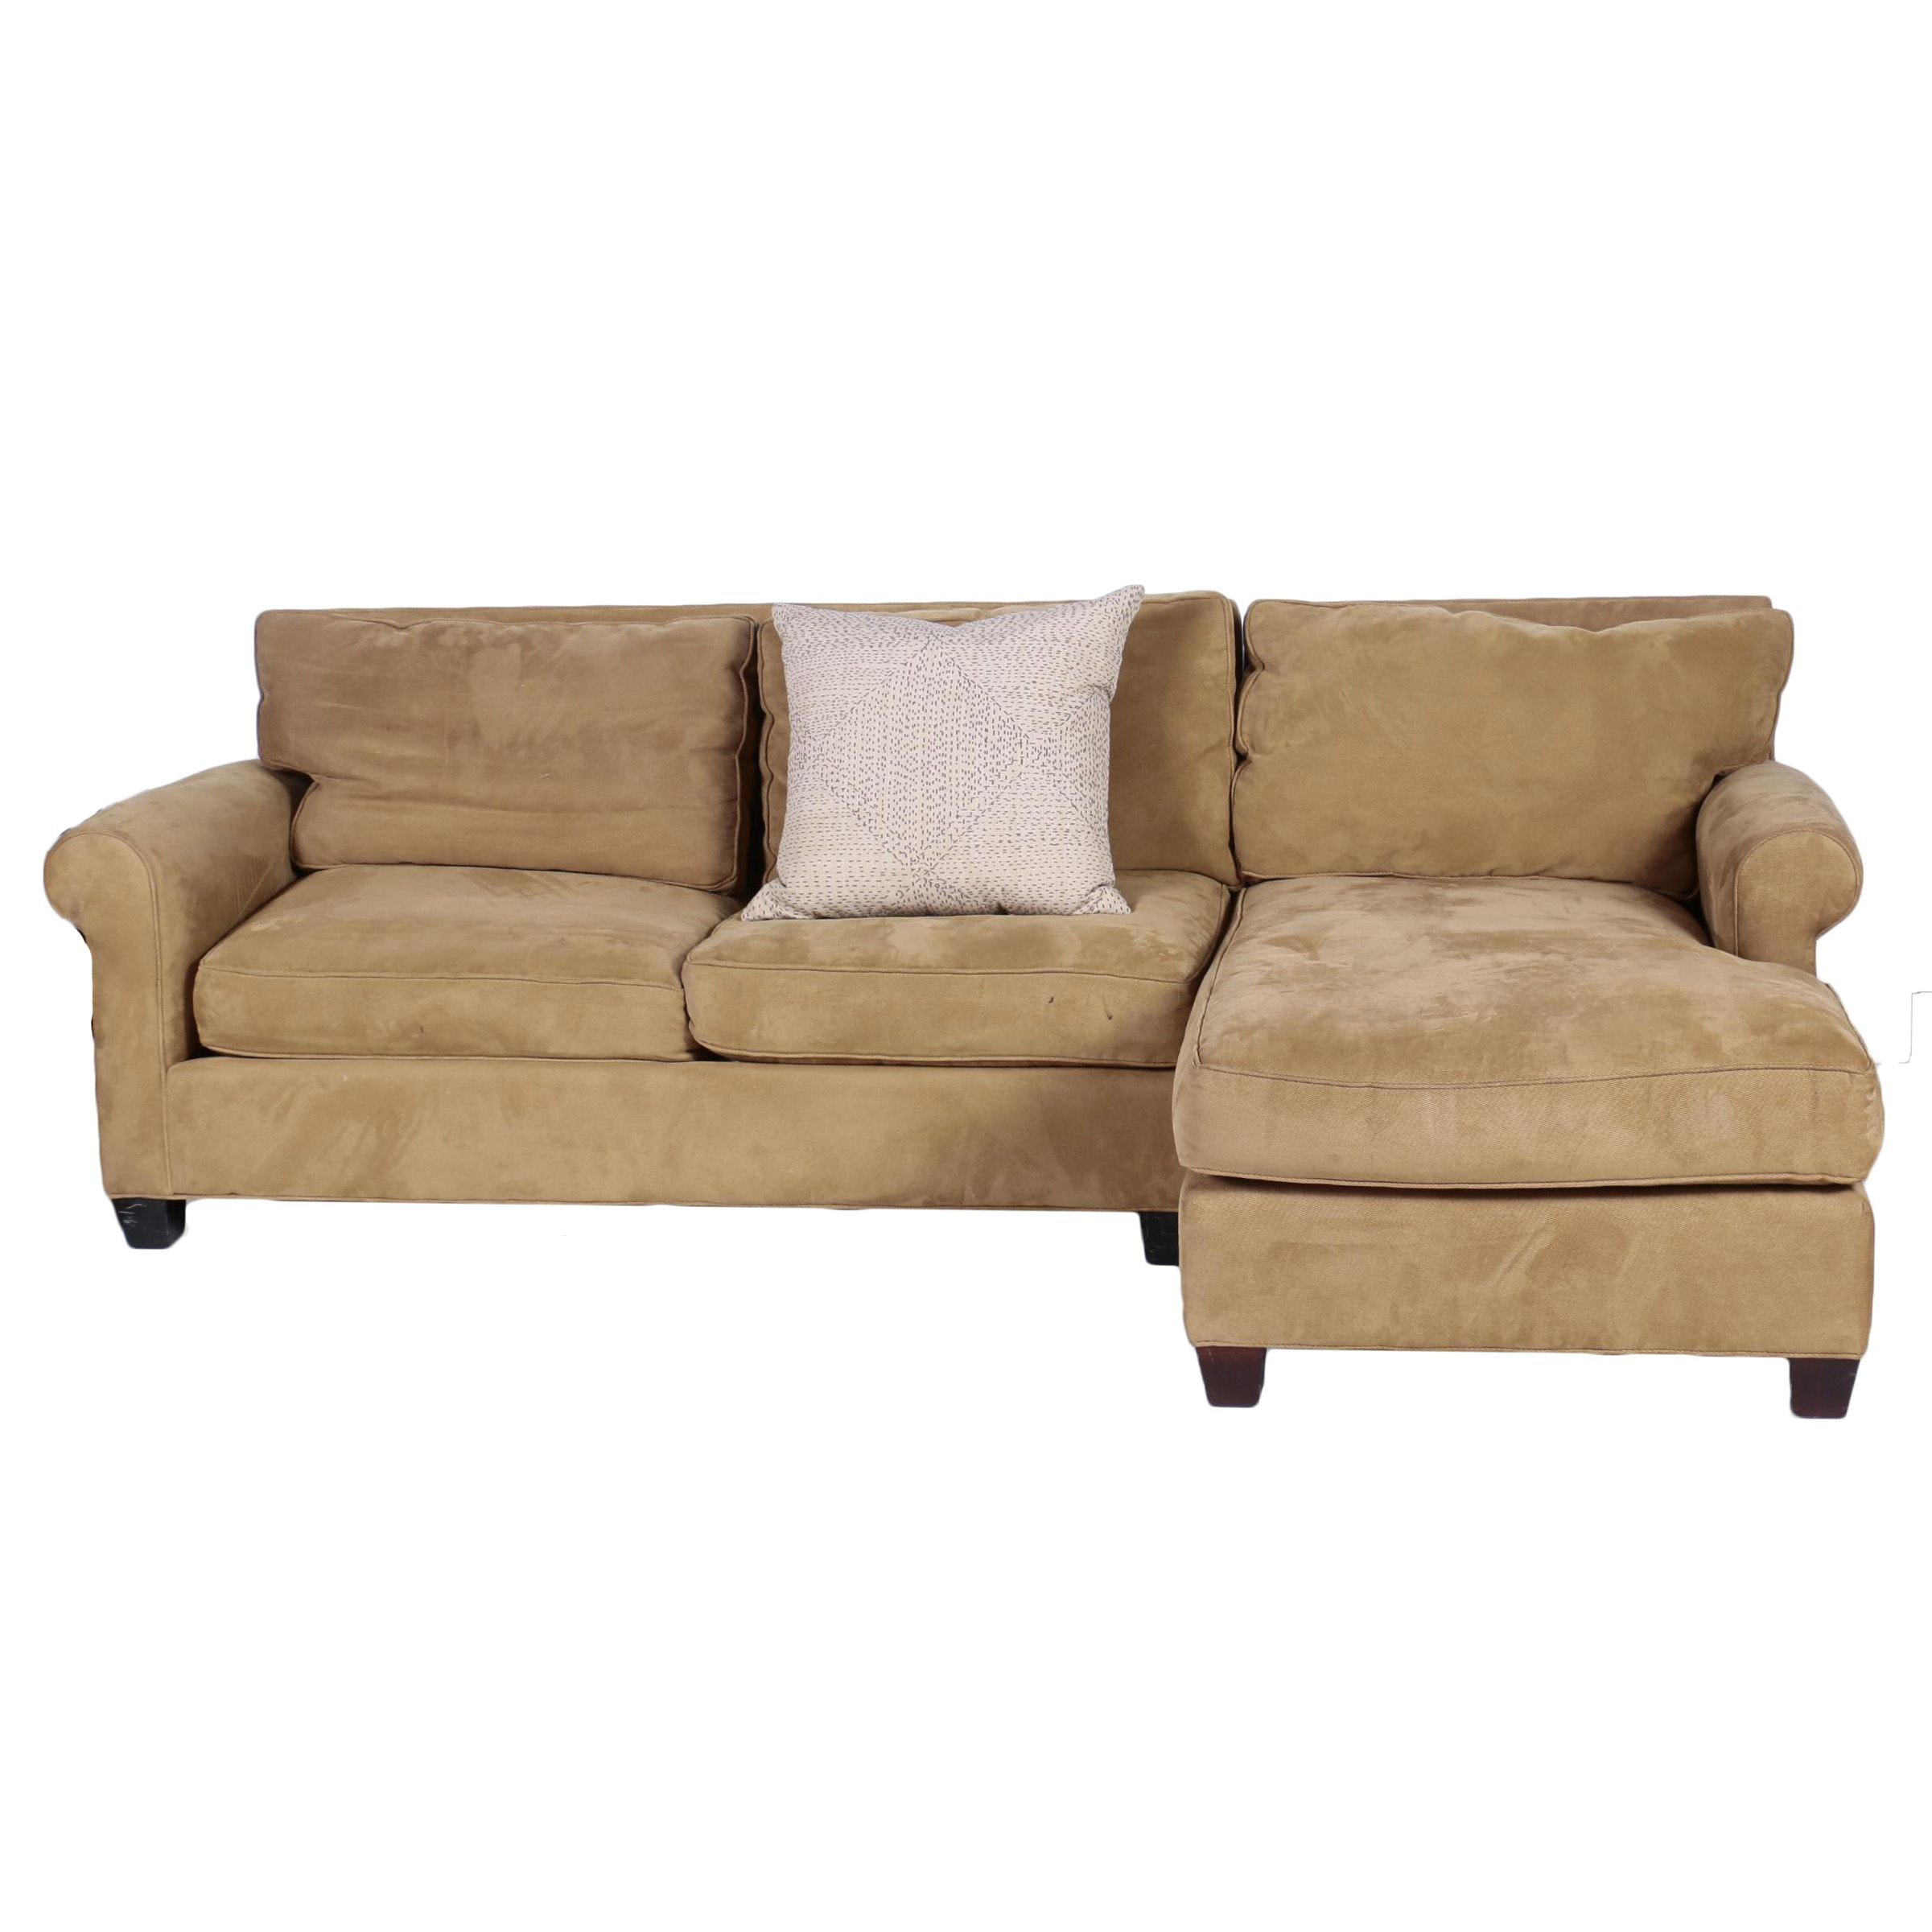 Brown Upholstered Right Sectional Sofa by McCreary Modern